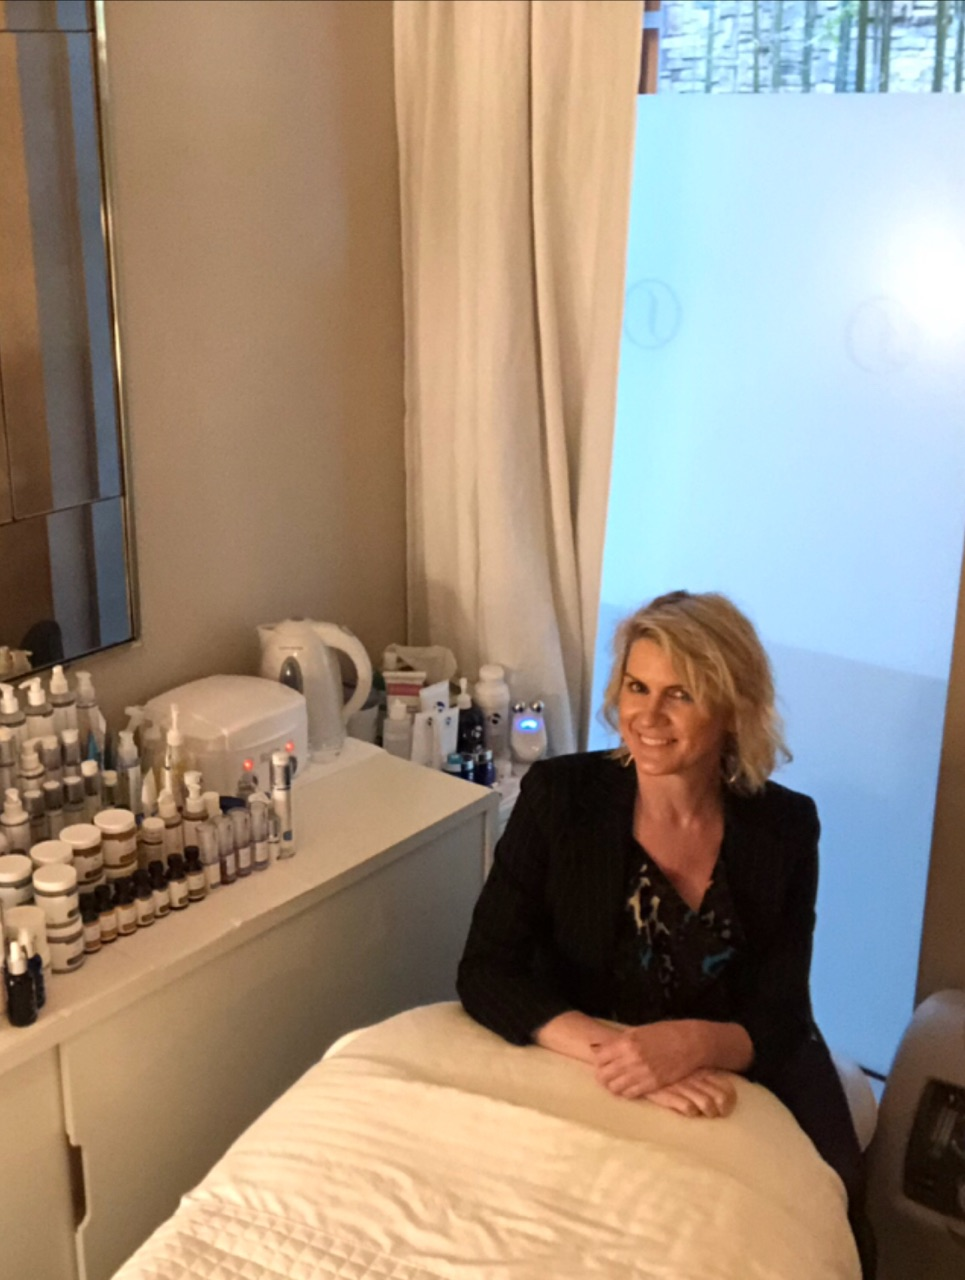 """MEET MIA - """"I feel so fortunate and grateful that I get to make a marked improvement on not only my clients skin, but their day, week or month. I absolutely love making my clients feel more confident and beautiful, and I get as much joy and satisfaction out of it as they do."""""""